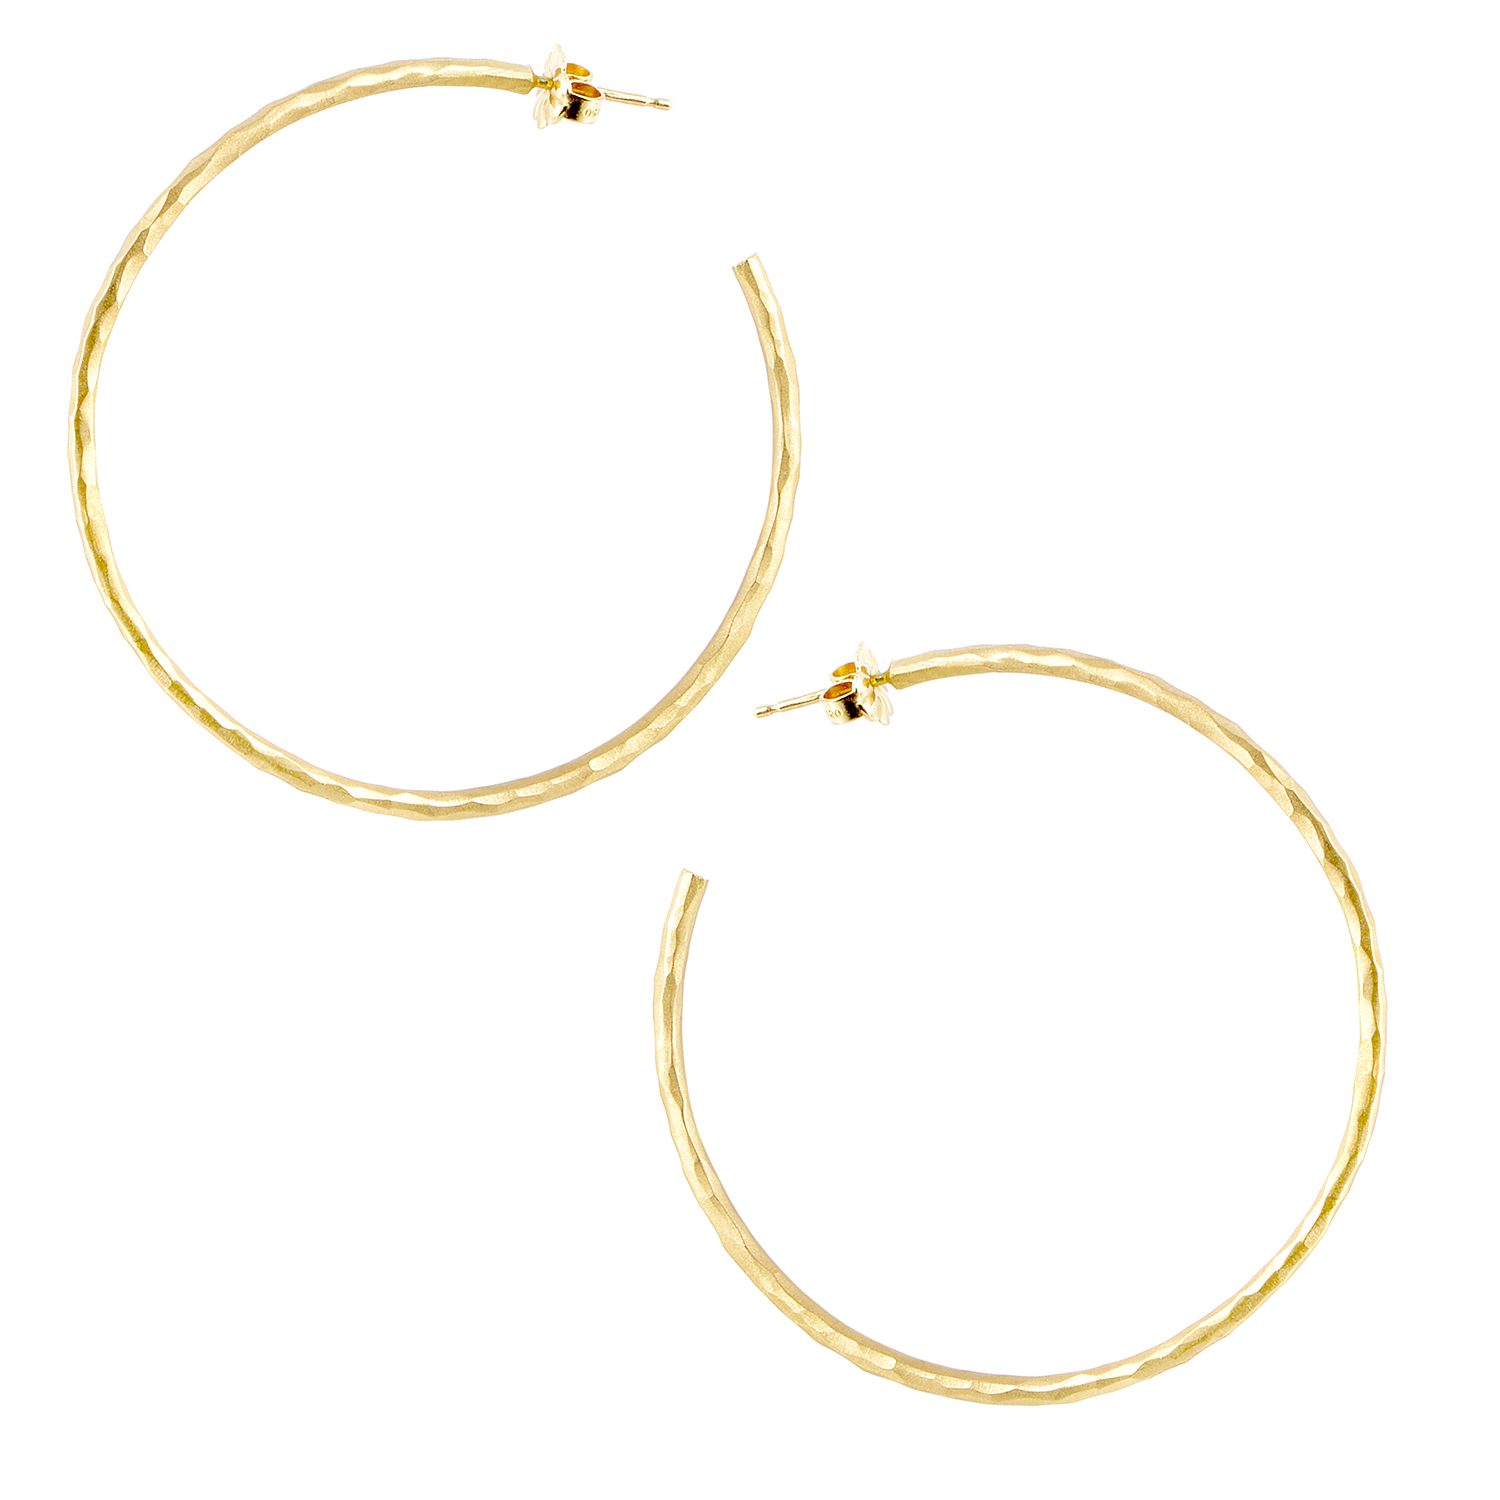 Tiffany & Co. Paloma Picasso Women's 18K Yellow Gold Large Hoop Earrings